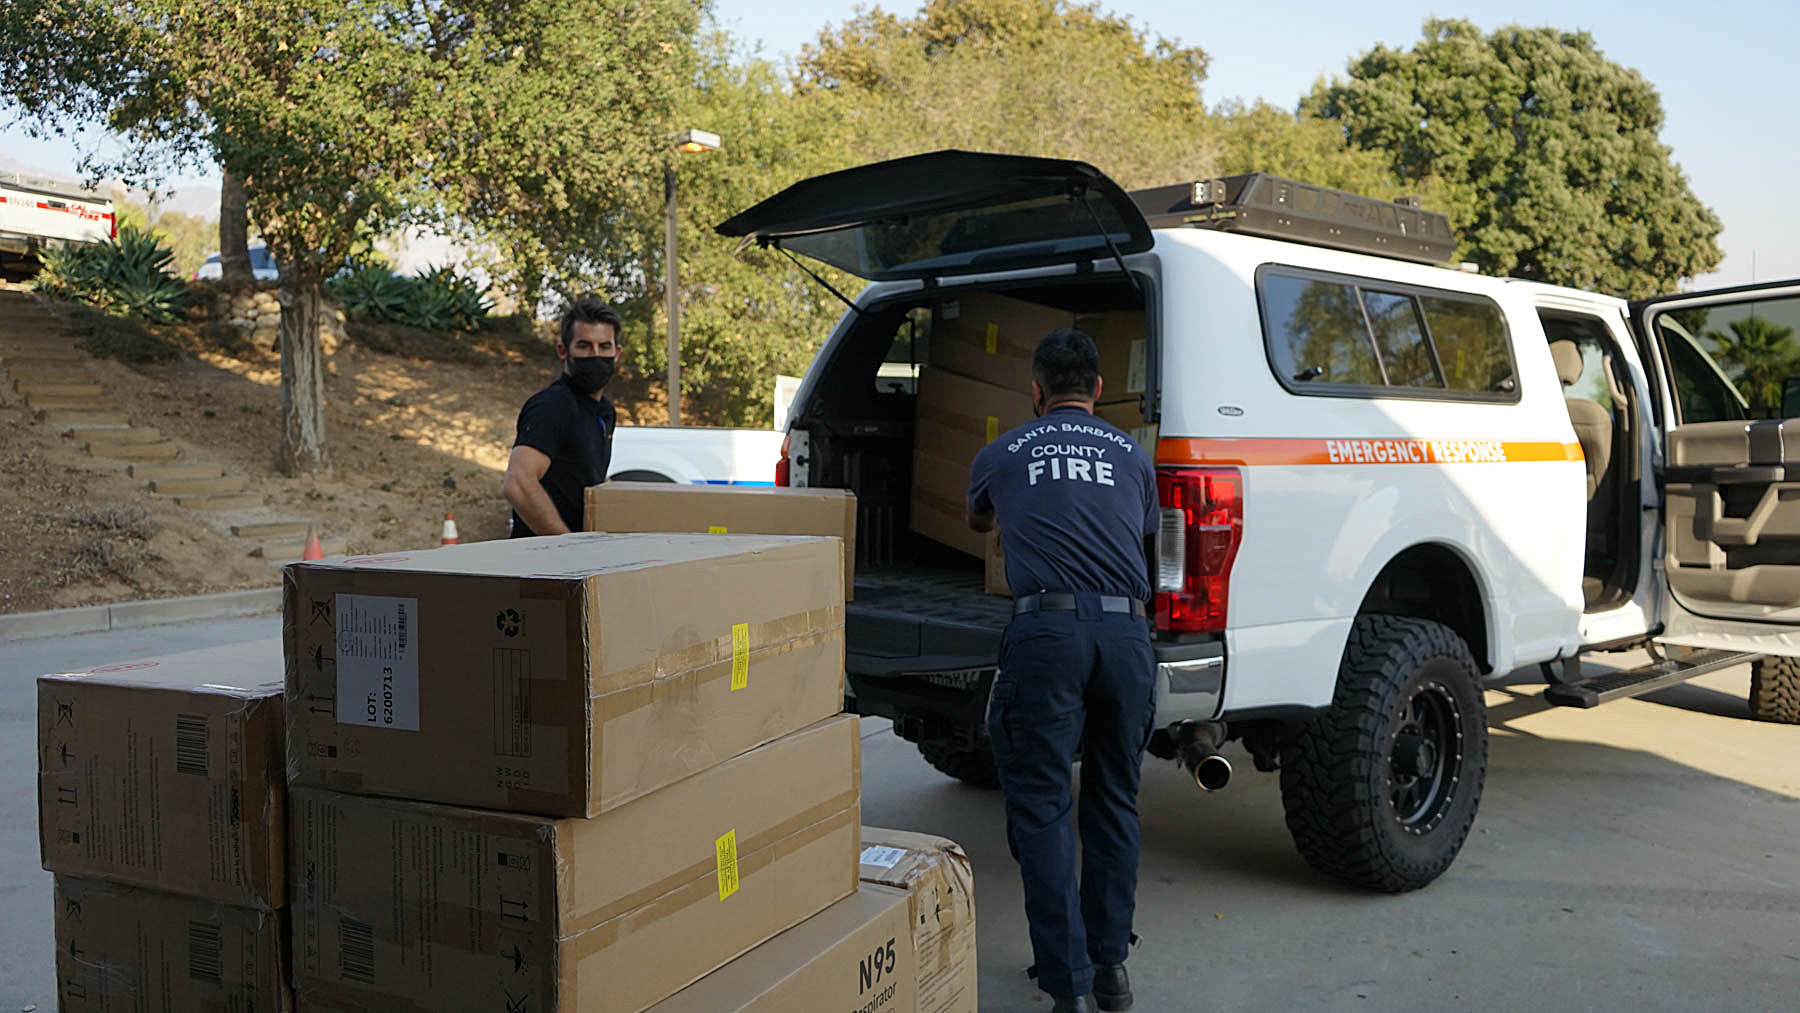 Direct Relief staff deliver N95 masks and eye medications to the Santa Barbara County Fire Department on Oct. 13, 2021,  to support their efforts to quell the Alisal Fire. (Amarica Rafanelli/Direct Relief)